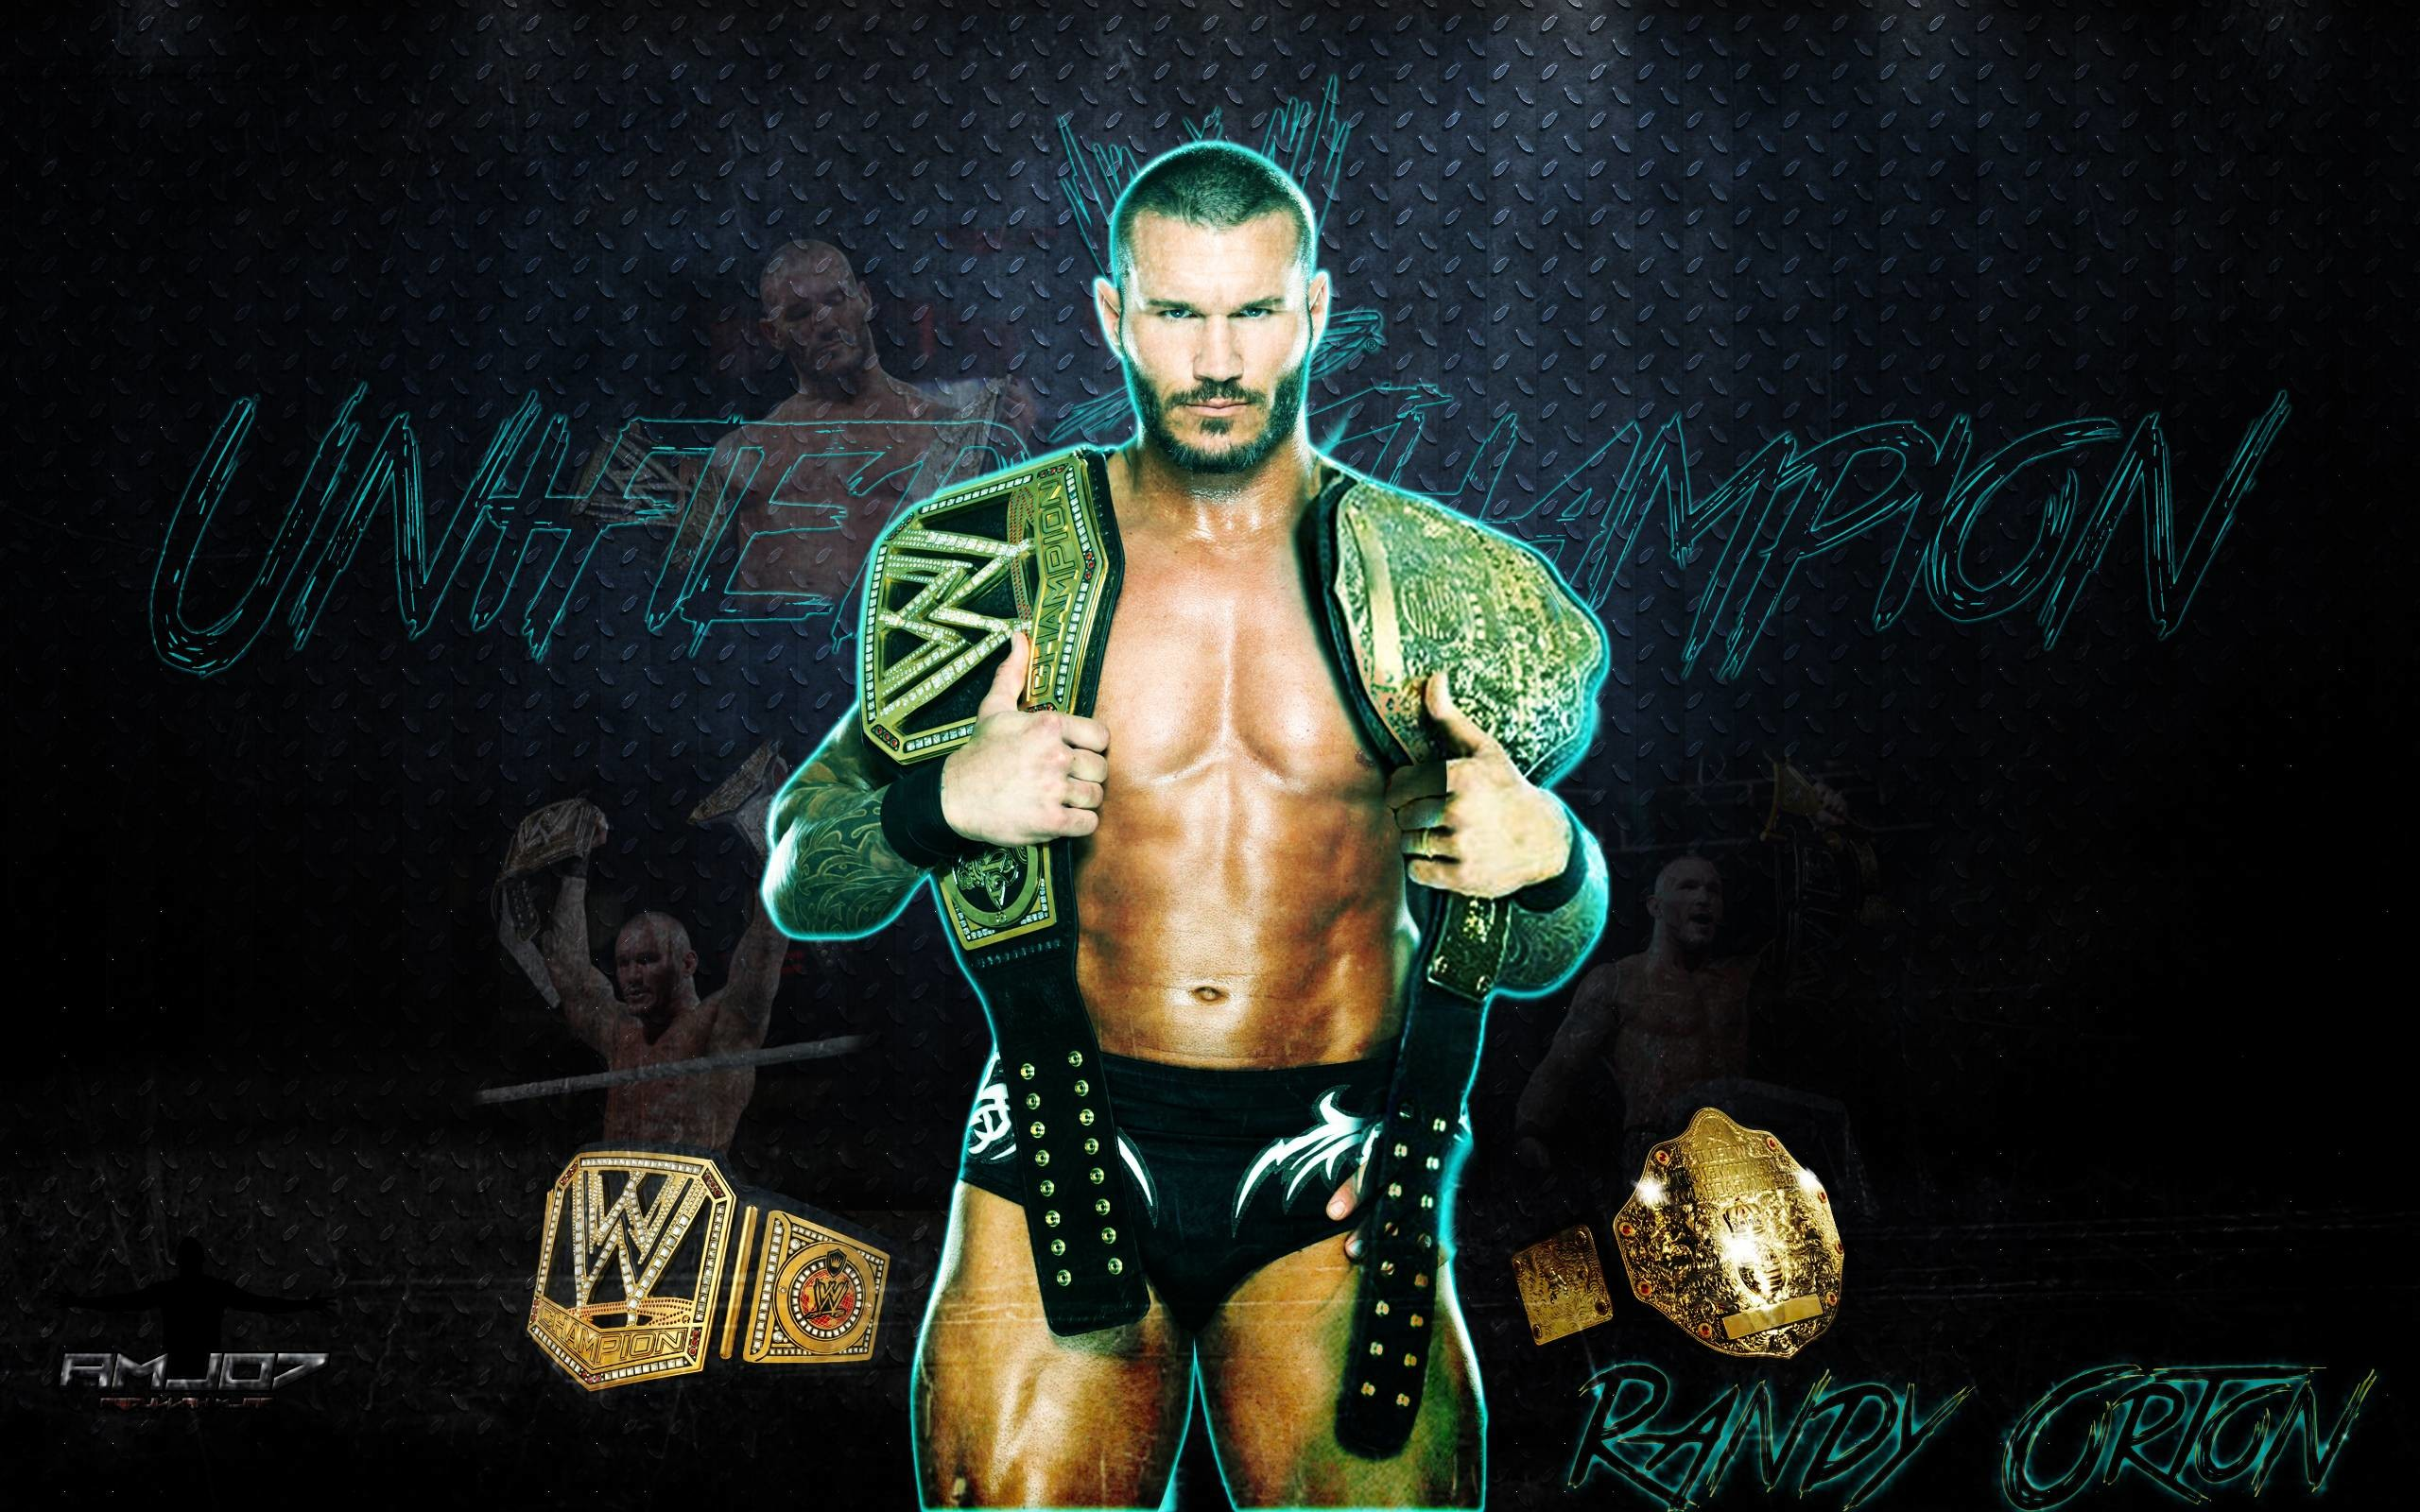 Hd Wallpaper Randy Orton